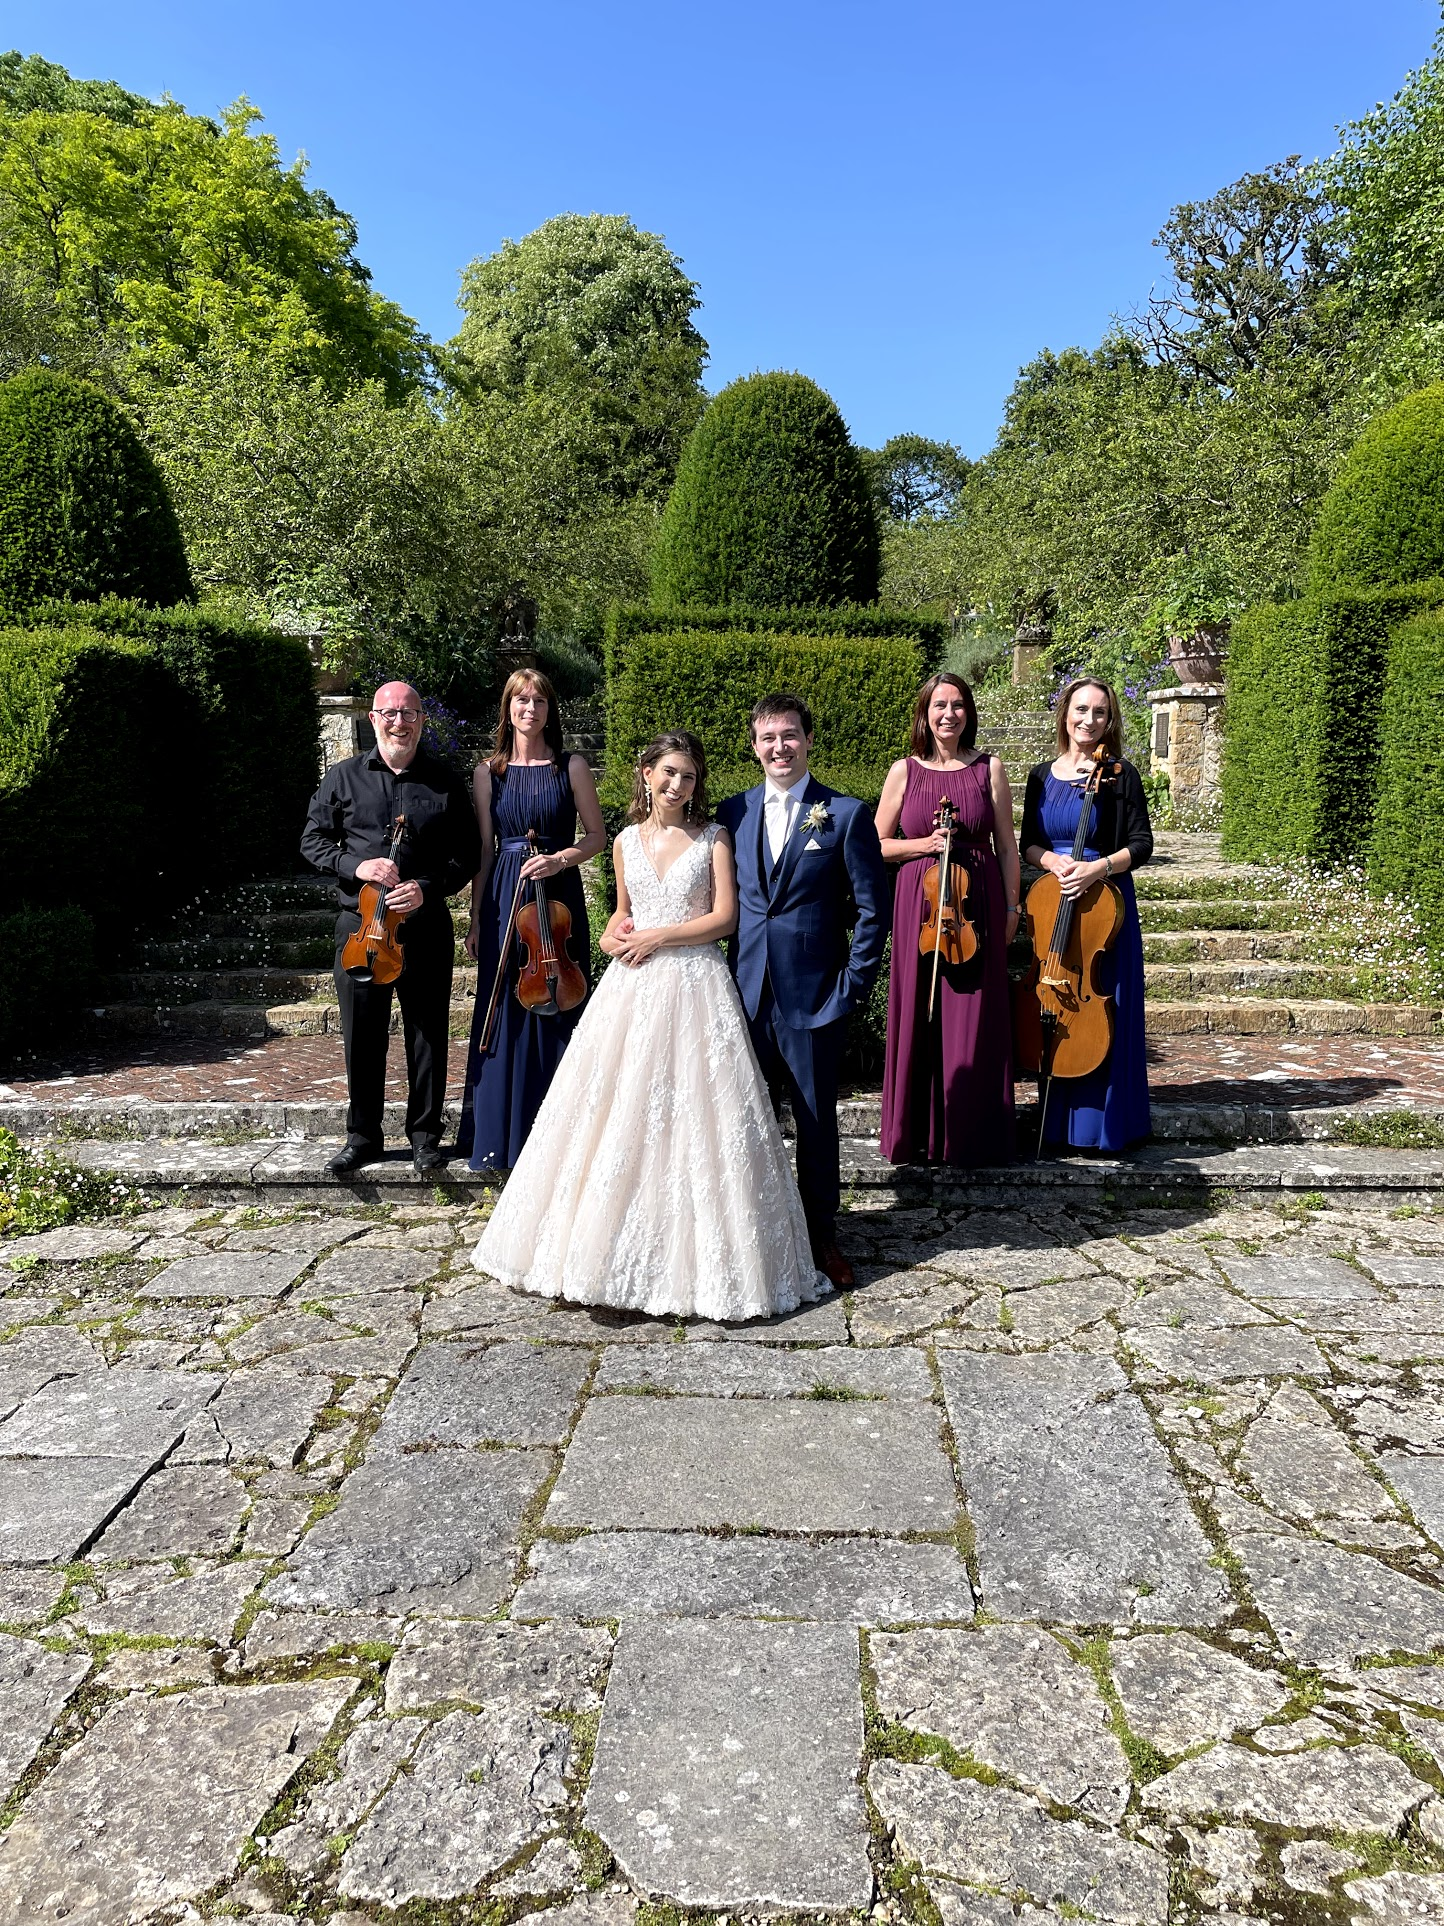 Luxurious wedding at Mapperton House in Dorset.